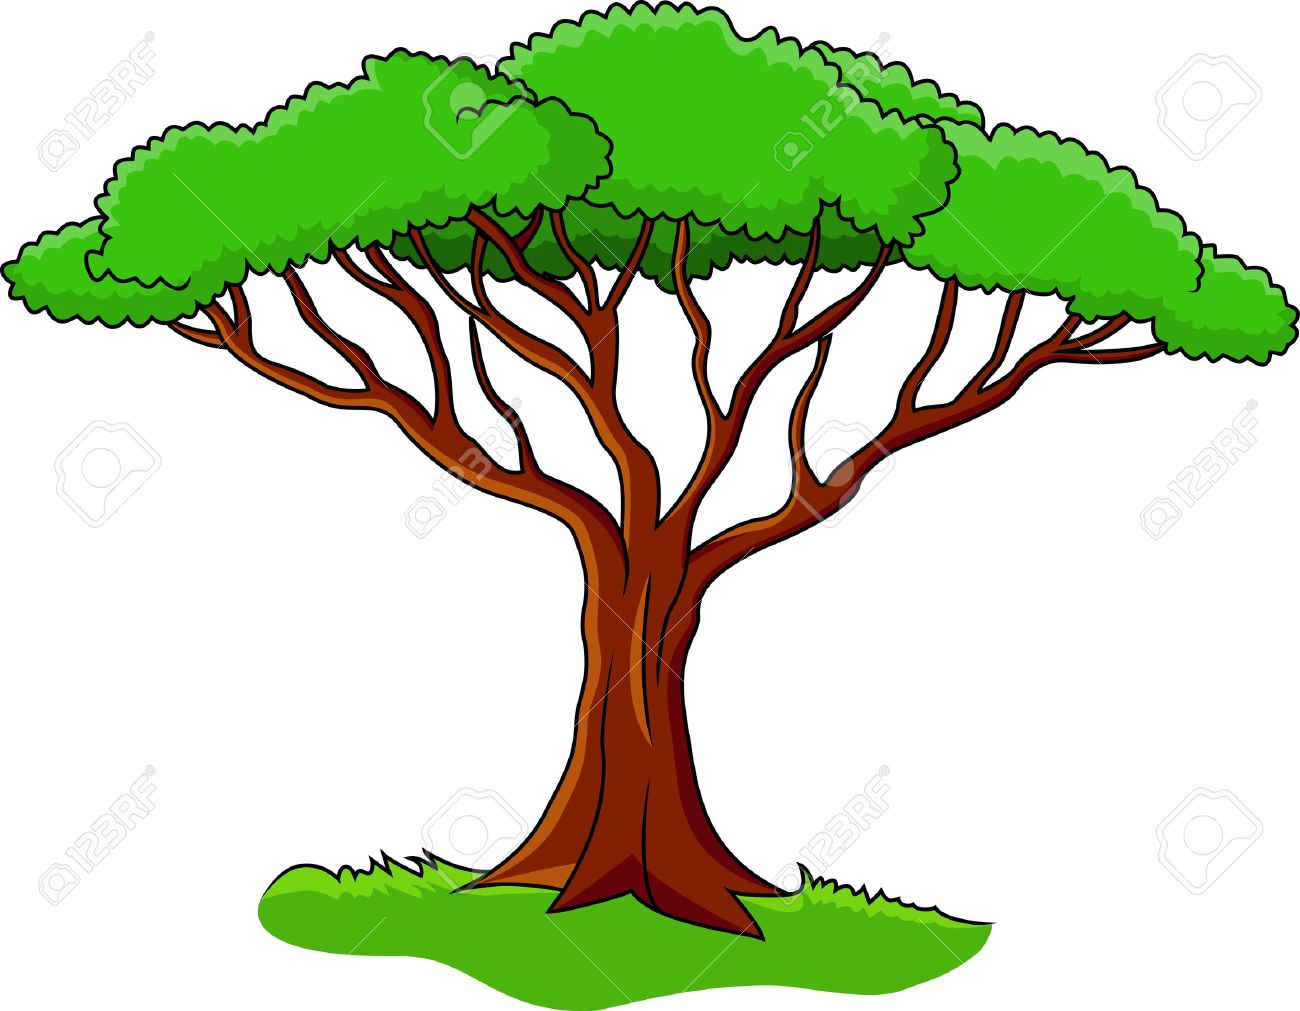 African Tree Clipart at GetDrawings.com.